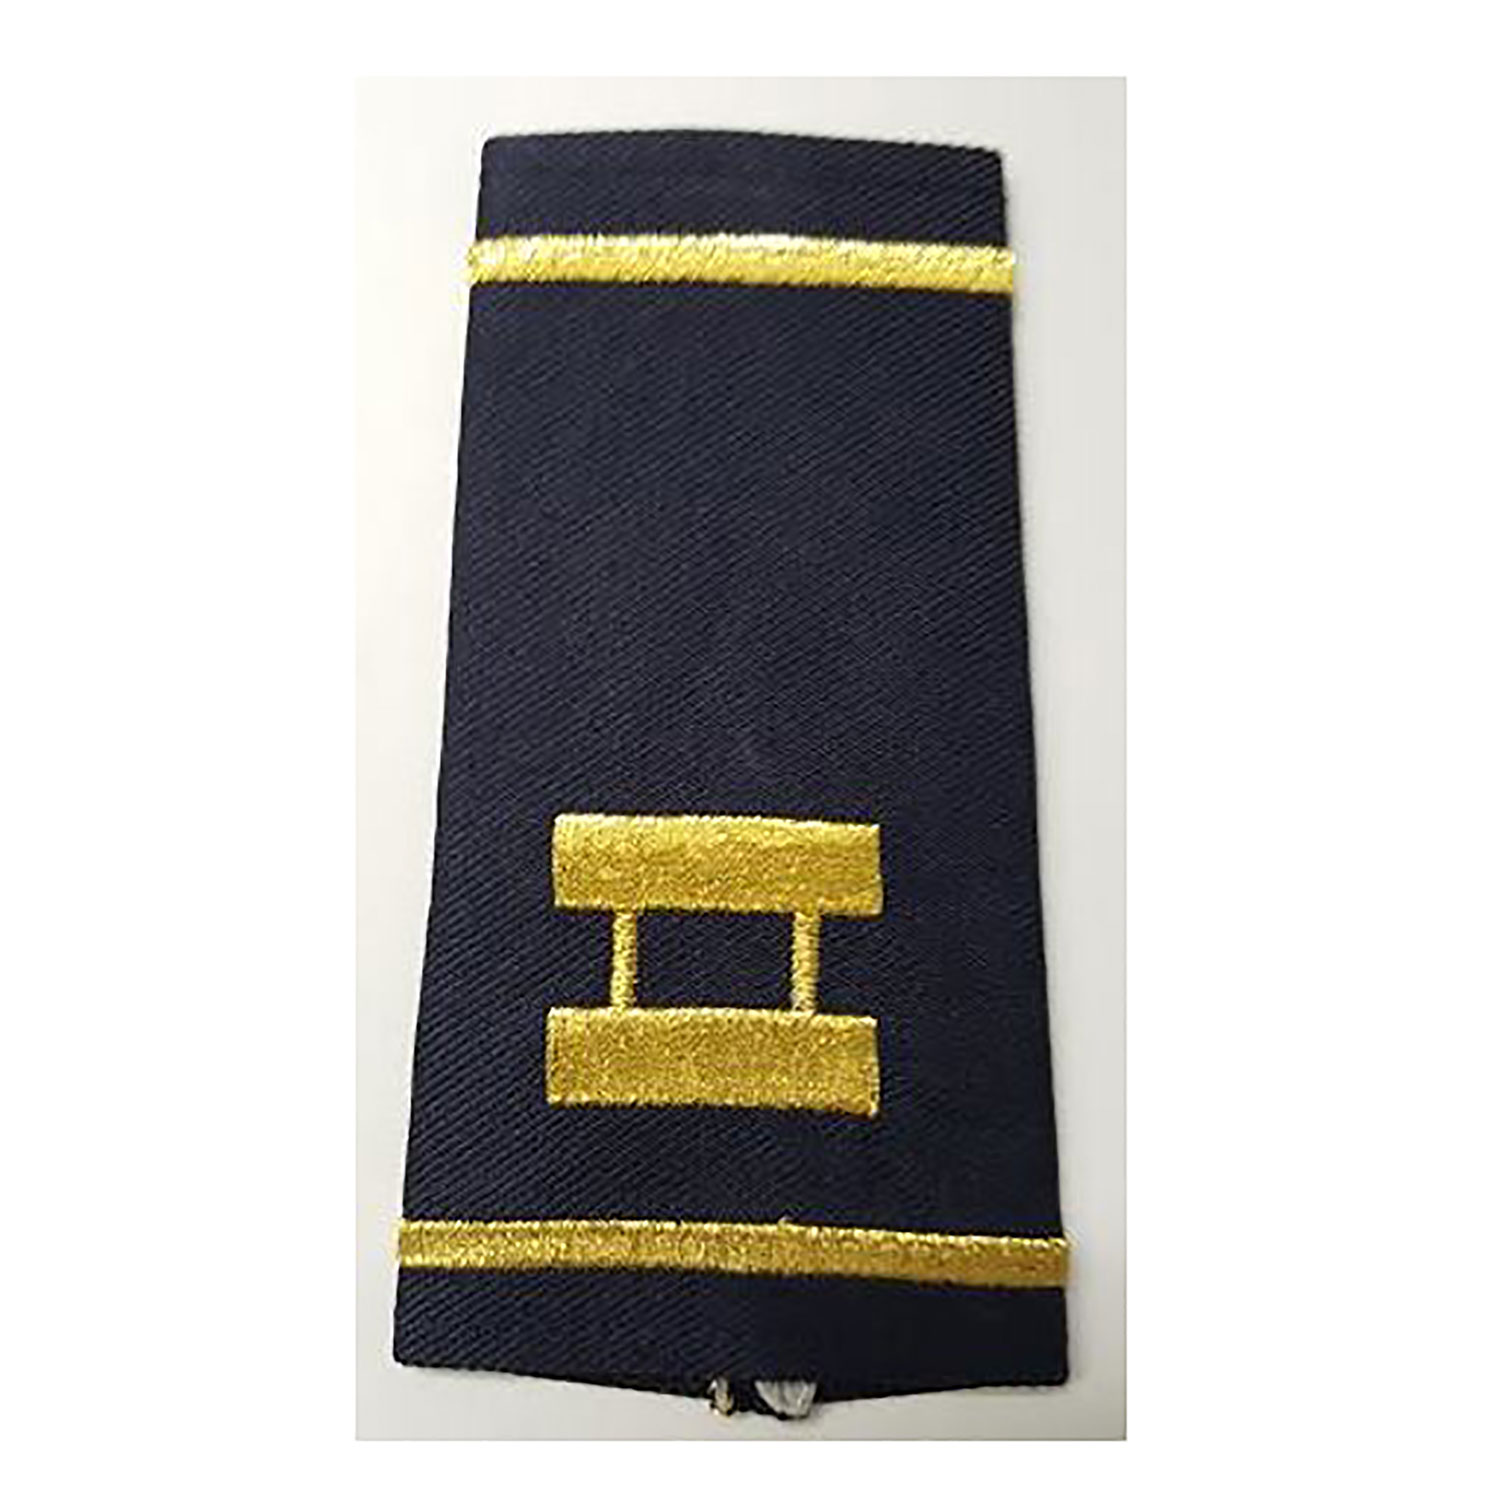 Premier Emblem Double Bar Captain Shoulder Boards